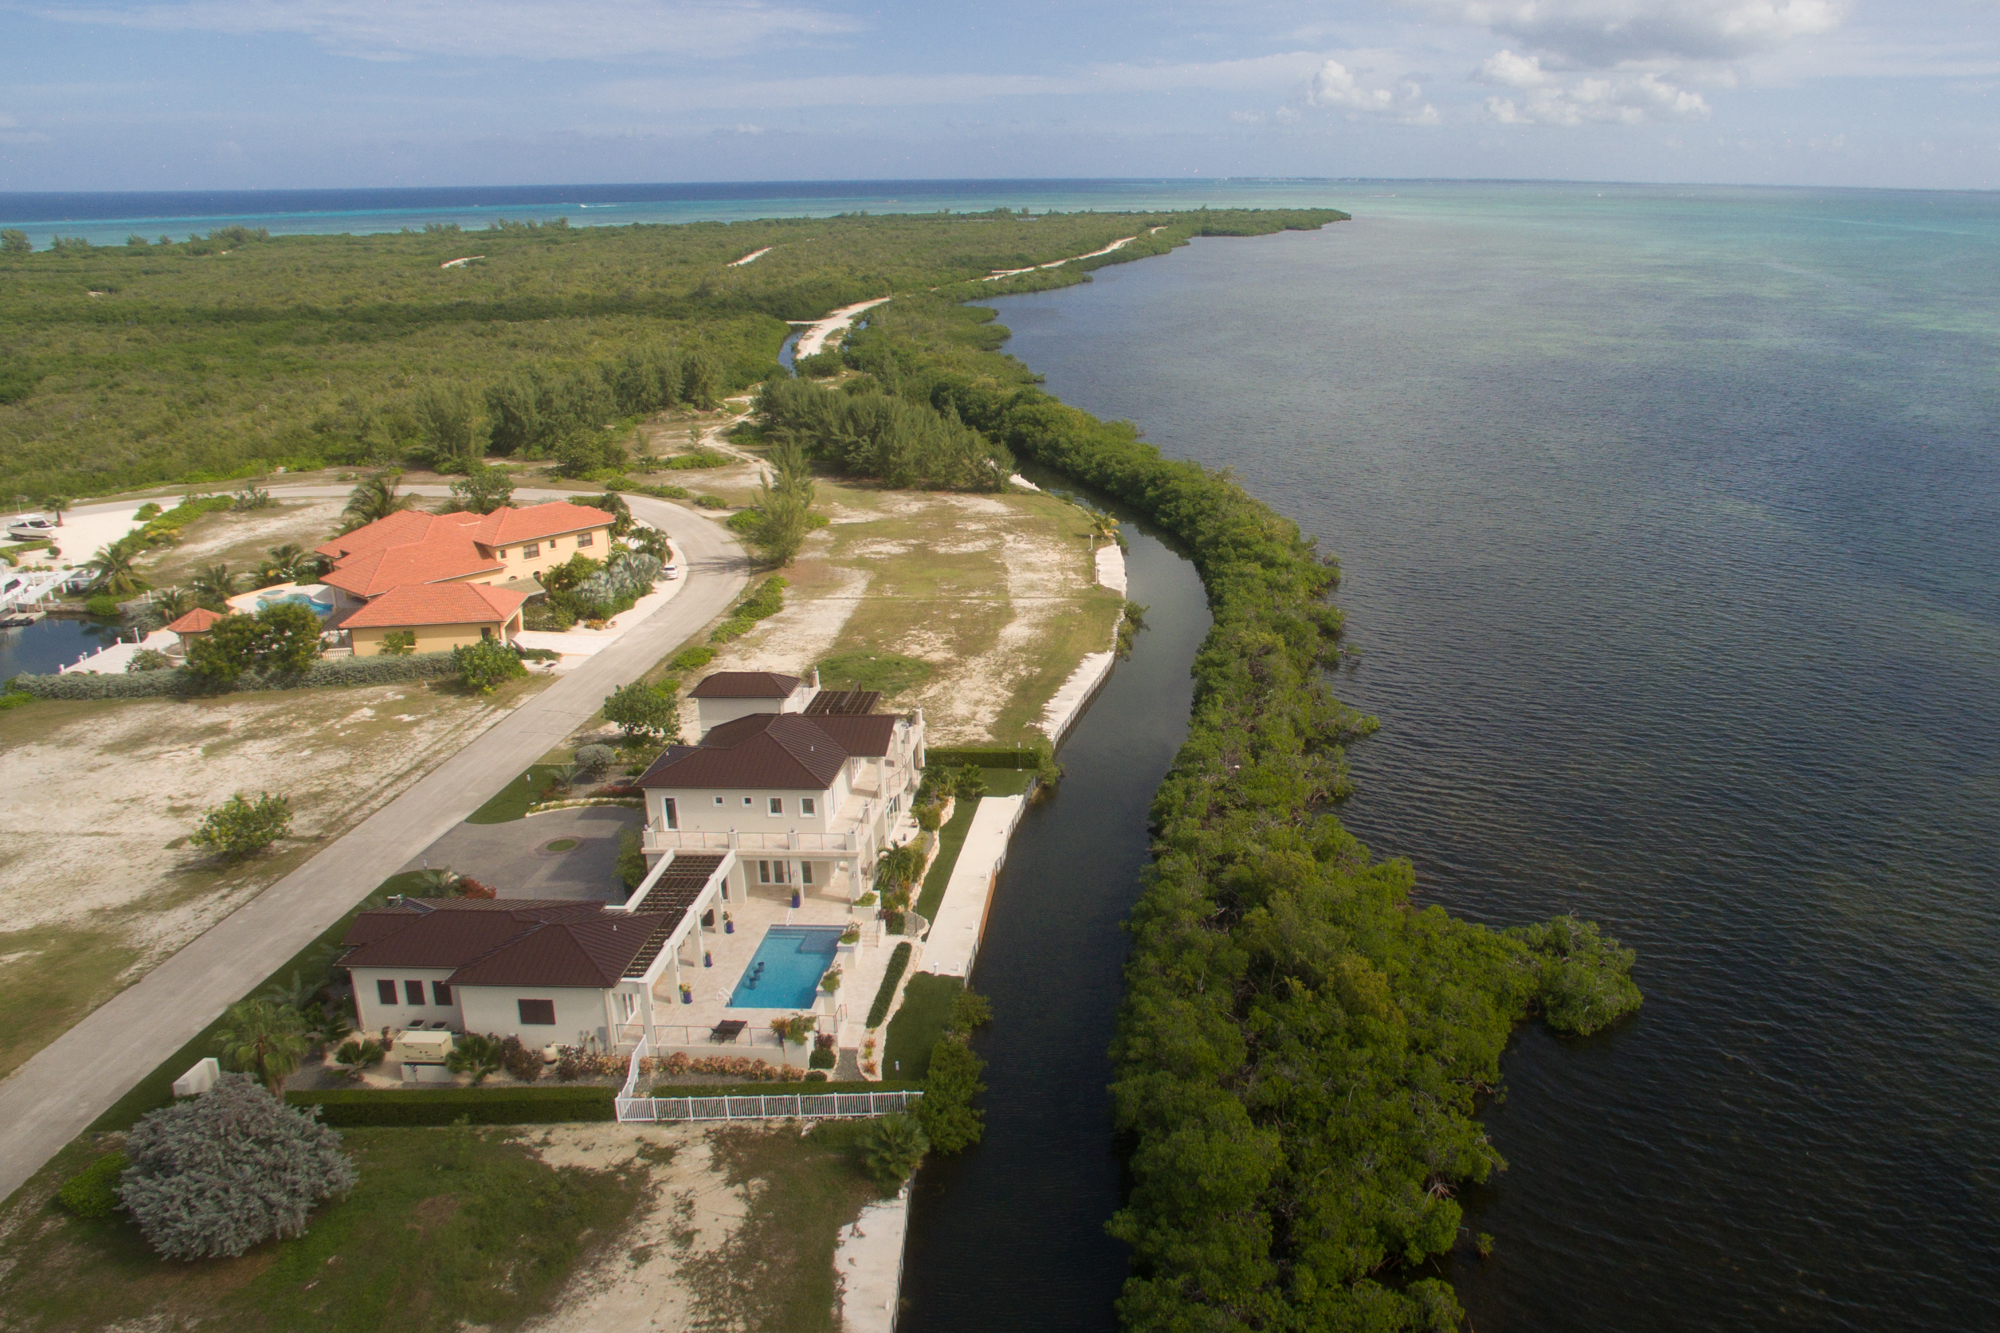 Single Family Home for Sale at Excalibur Shorewinds Trl West Bay, Grand Cayman, KY1 Cayman Islands